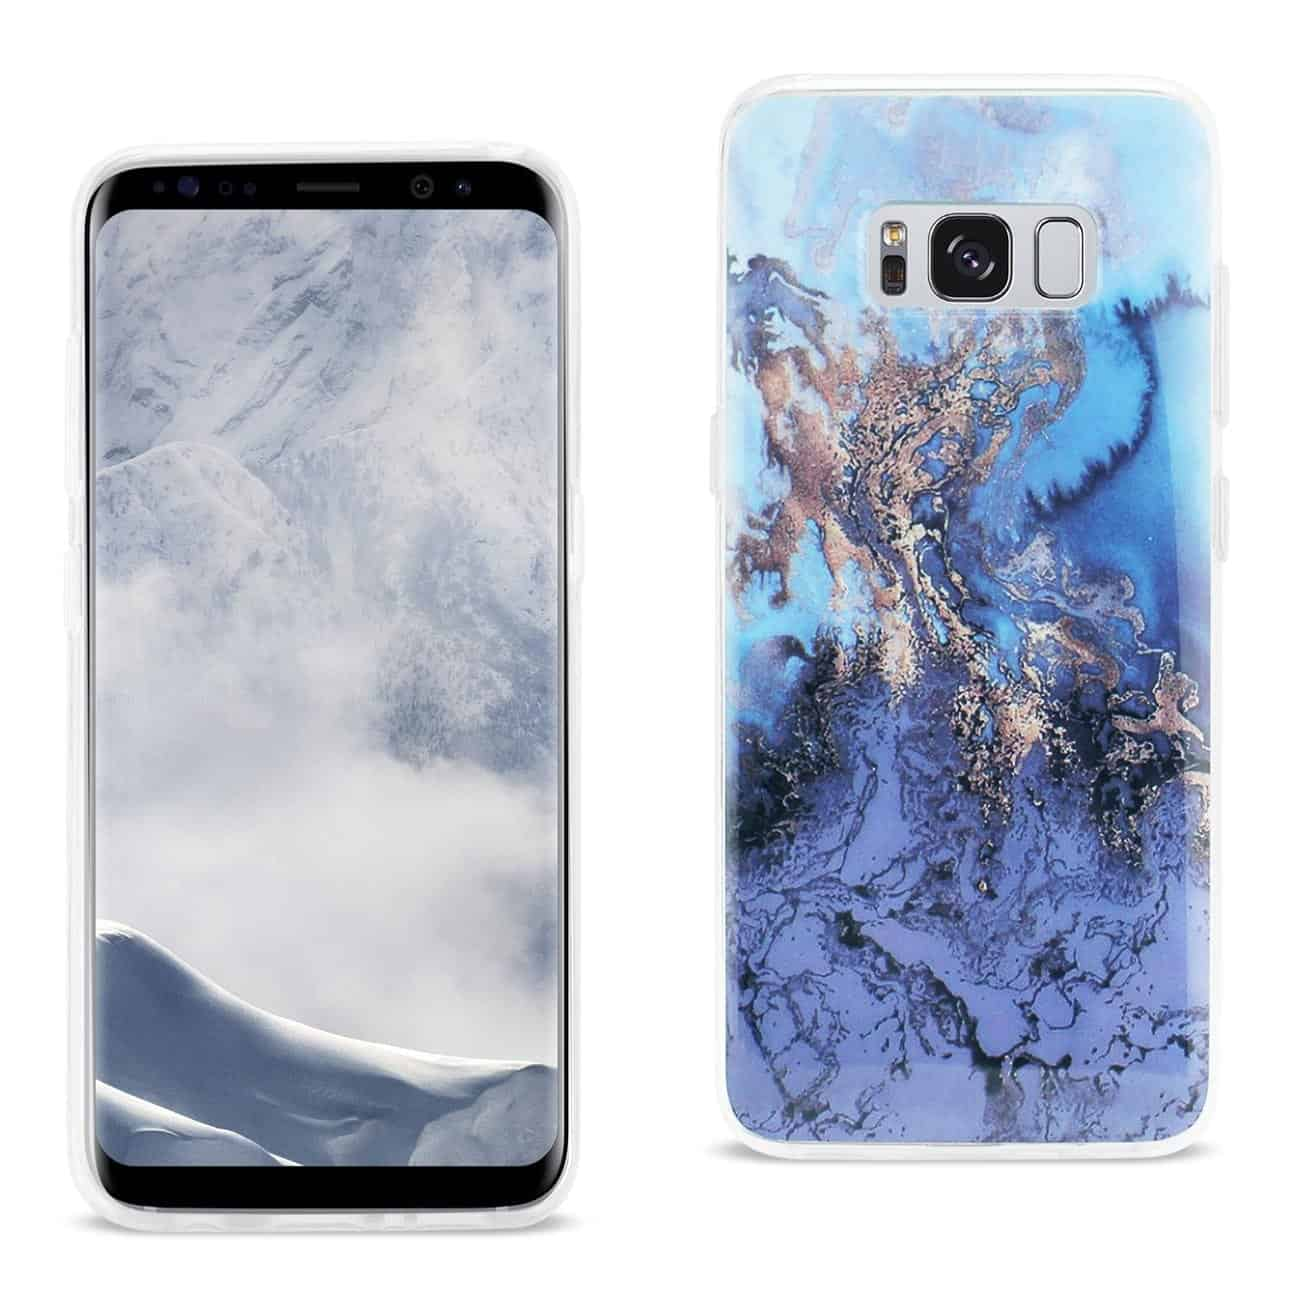 SAMSUNG GALAXY S8 EDGE/ S8 PLUS AZUL MIST COVER IN BLUE